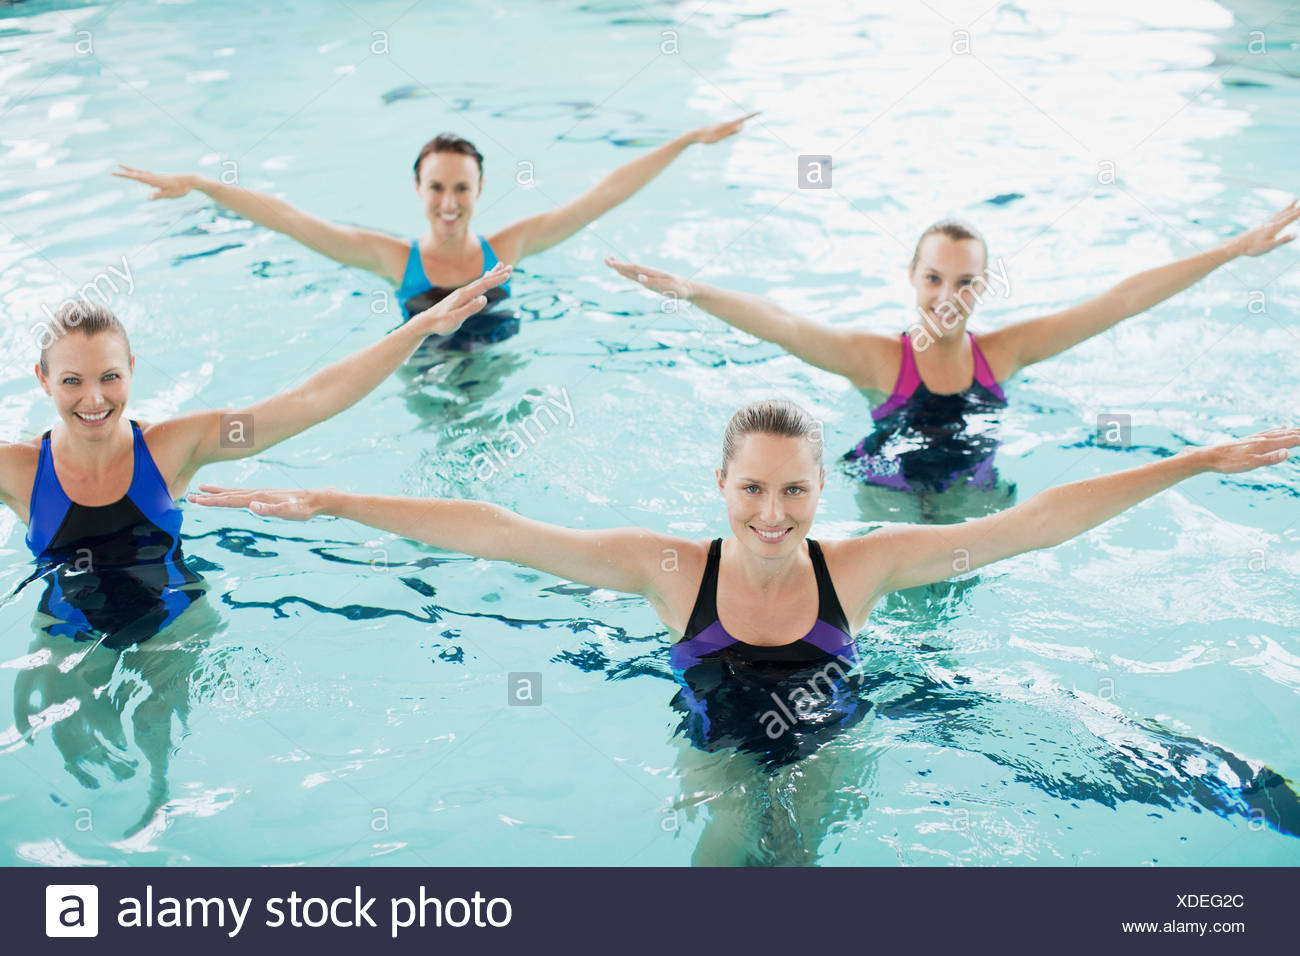 Portrait of smiling synchronized swimming team in swimming pool - Stock Image